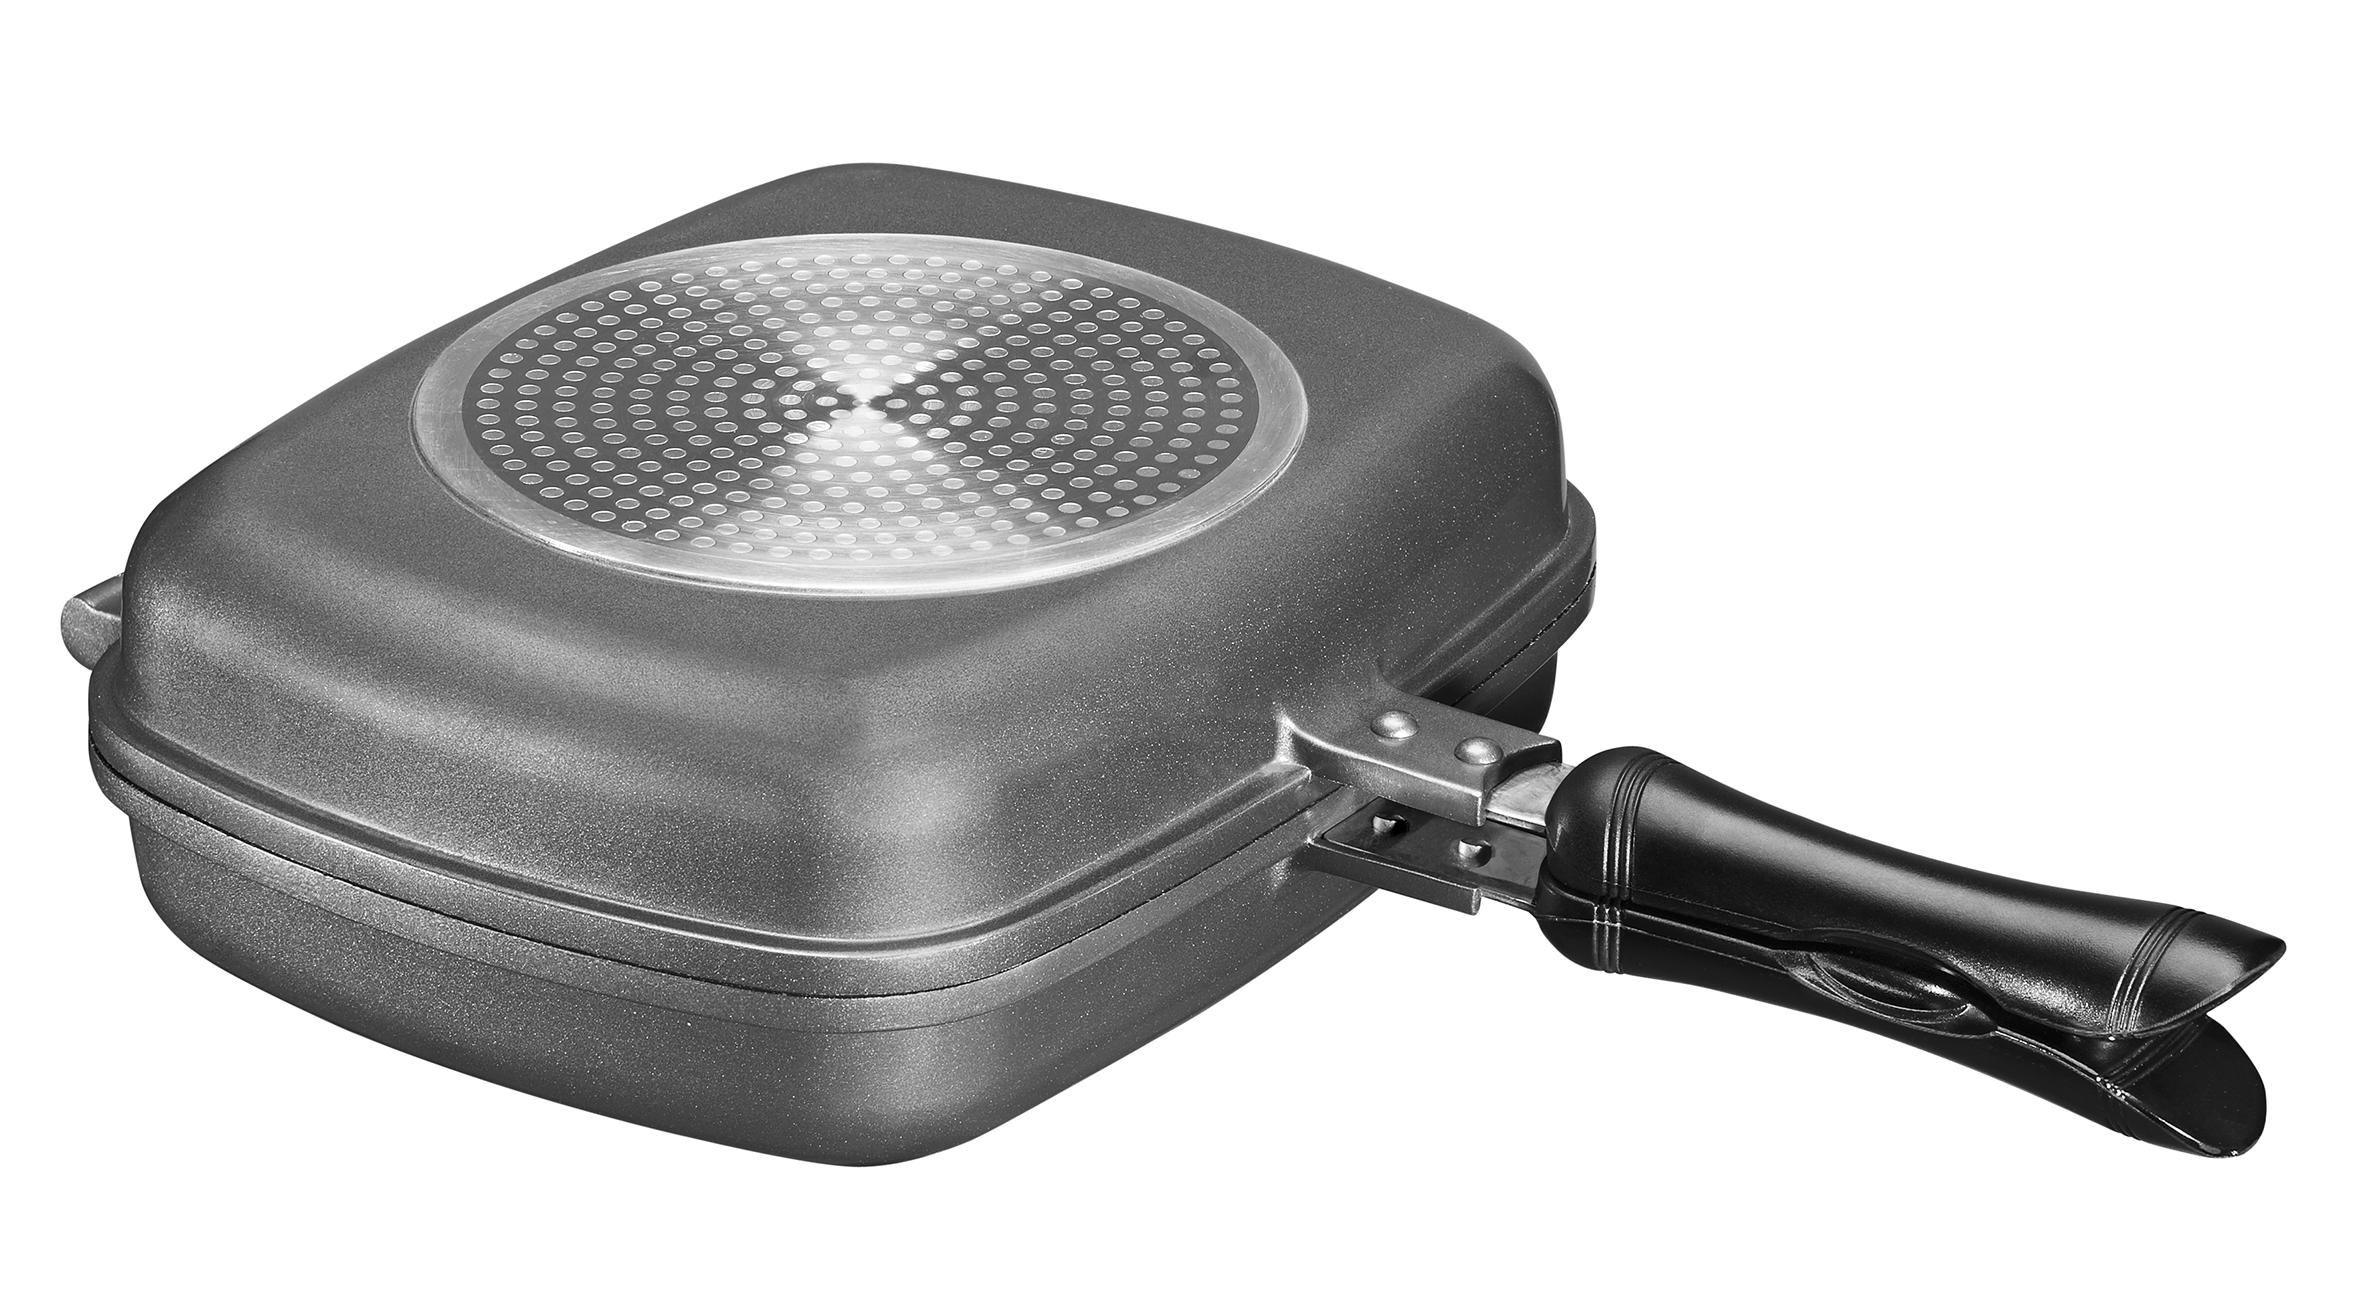 Stoneline 174 Multifunctional Square Double Frying Pan 27 X